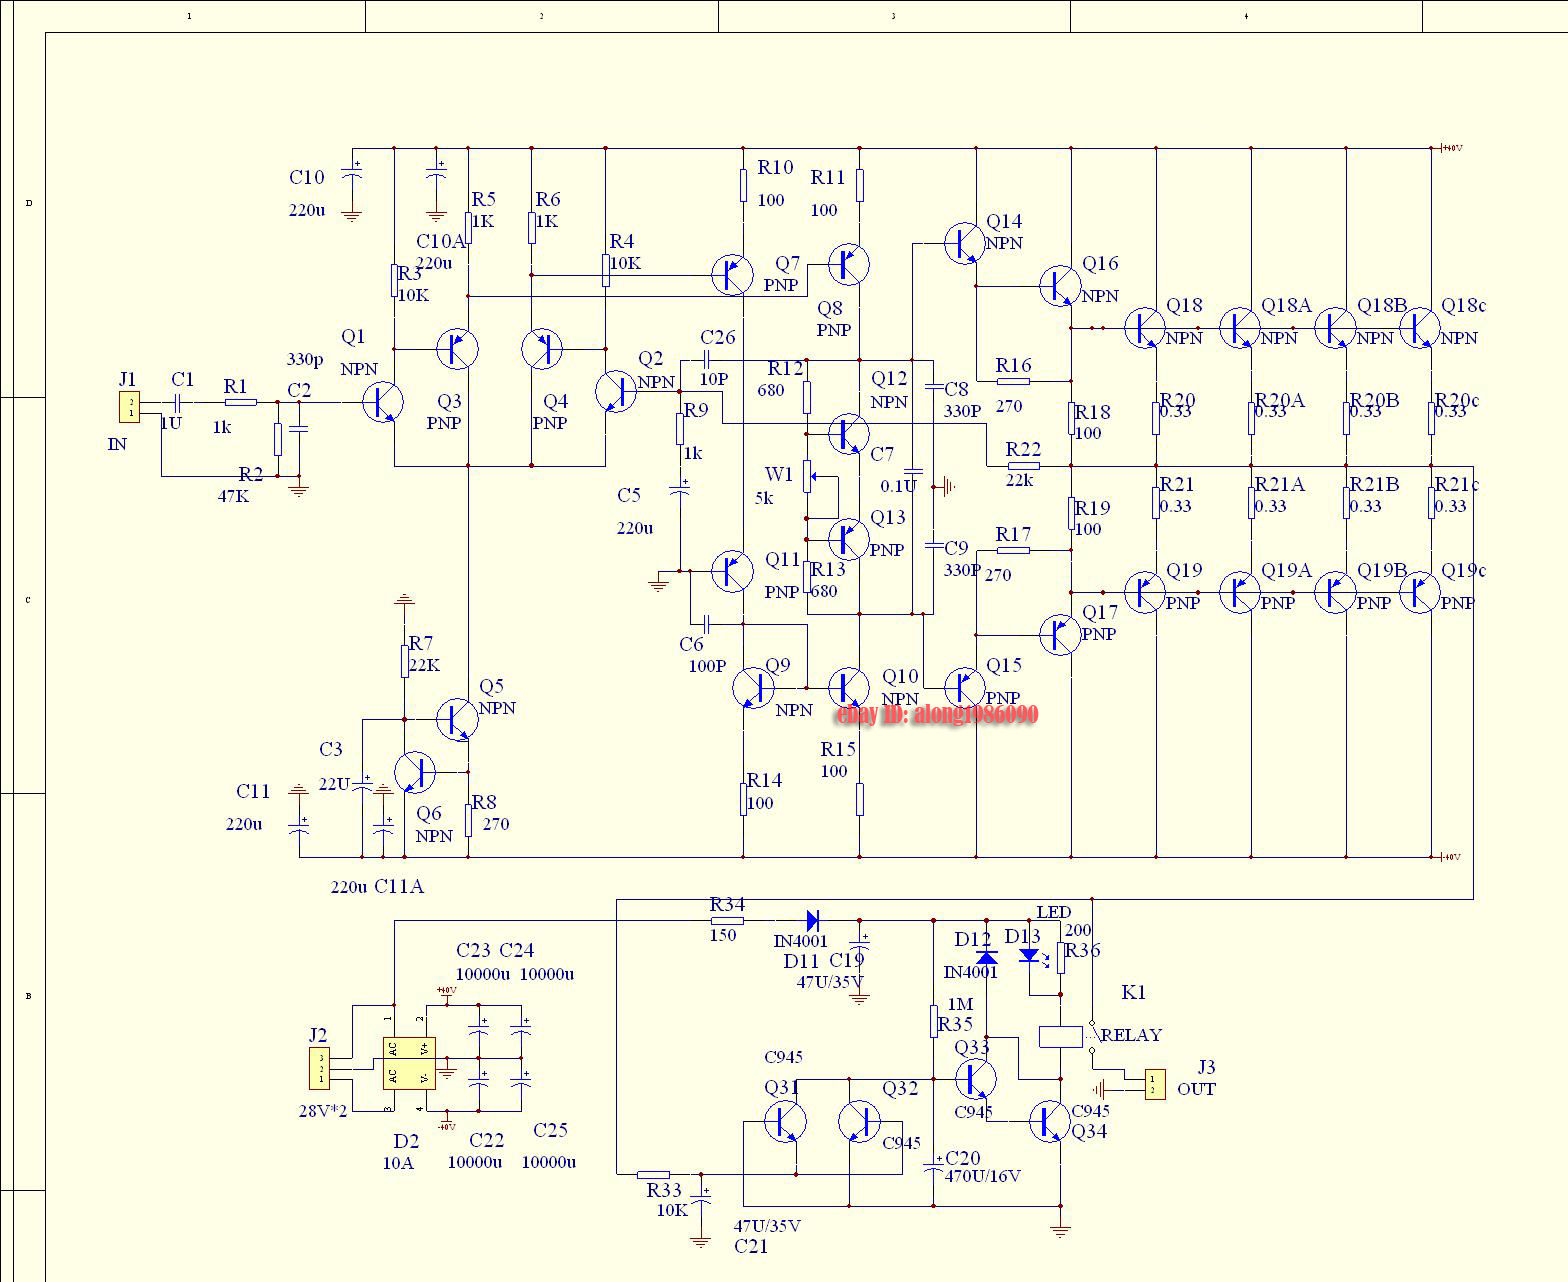 small resolution of cyrus 1 circuit diagram wiring diagram split cyrus 1 circuit diagram